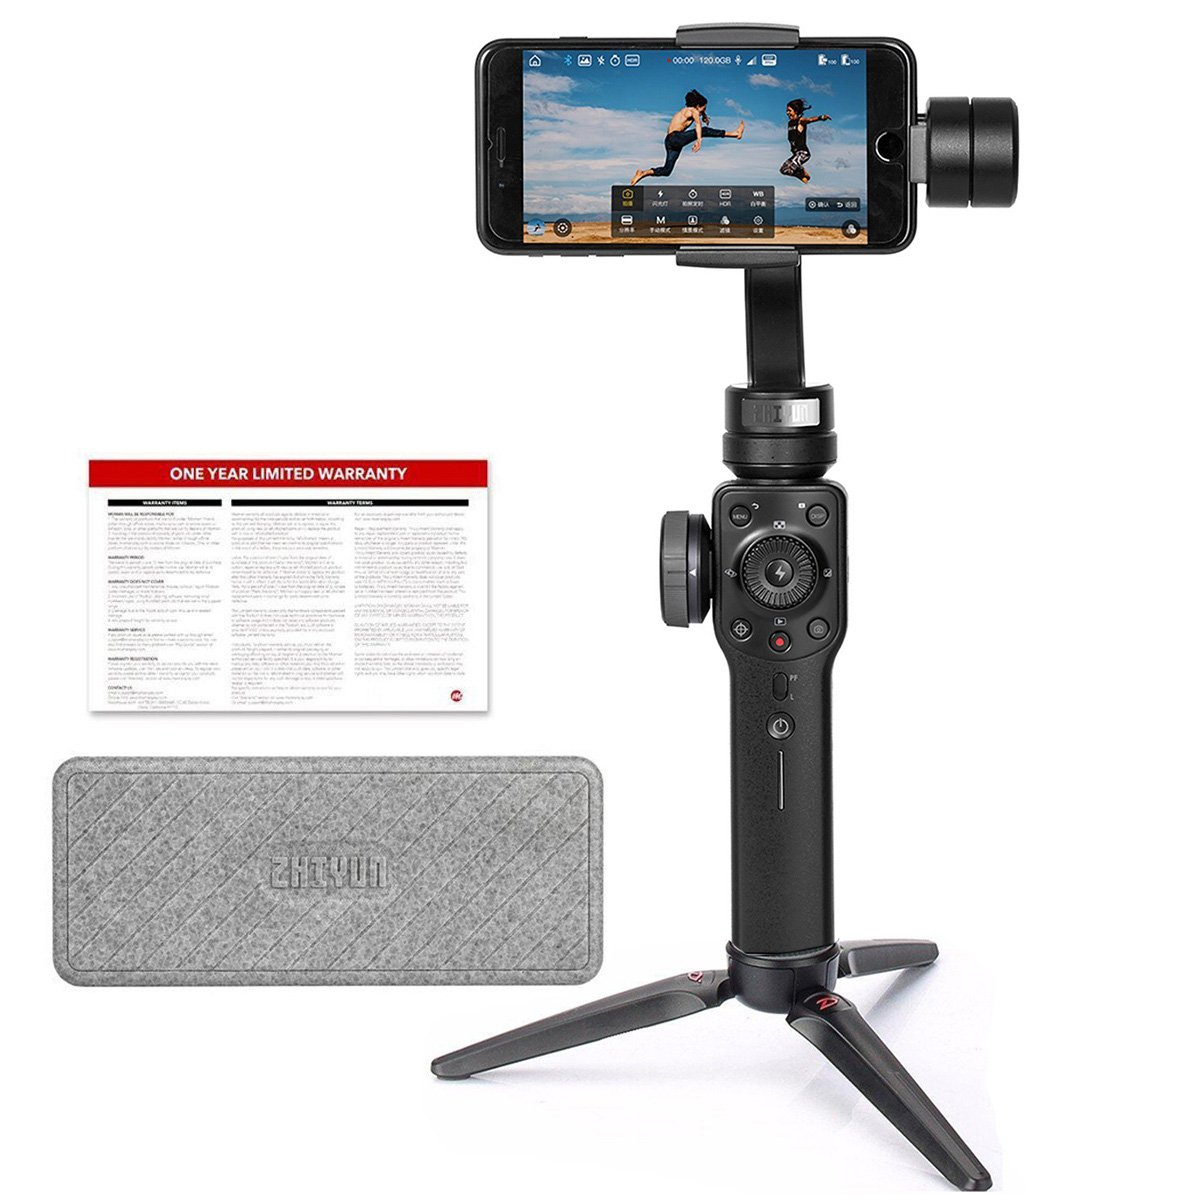 Zhiyun Smooth 4, 3-Axis Gimbal Stabilizer iPhone/Smartphone up to 7.4 oz, w/Focus Zoom Wheel PhoneGo Mode/Two-Way Charging/Timelapse Expert in Black zhi yun Smooth4